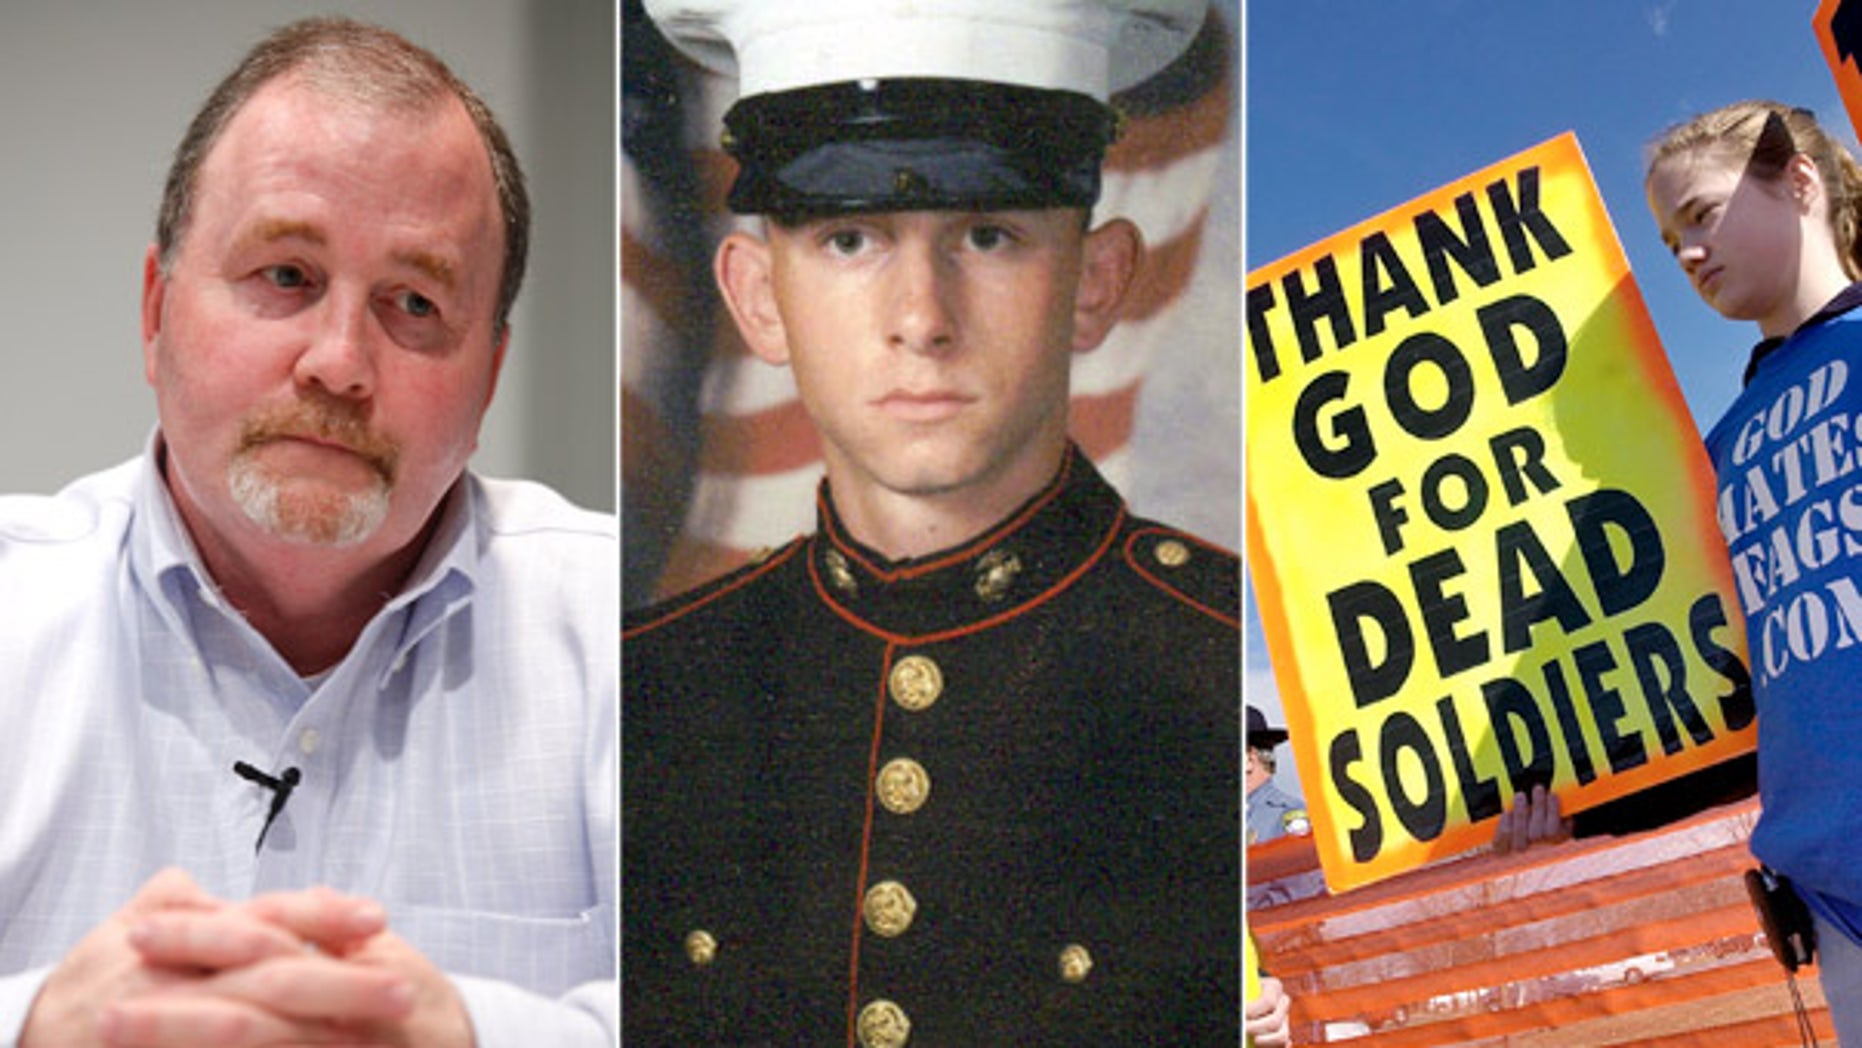 FILE: Albert Snyder, left, is the father of Lance Cpl. Matthew Snyder, center, whose funeral was picketed by members of the Westboro Baptist Church, which is vowing to hold protests at the funeral of 9-year-old Christina Green, who was killed by a gunman during a public meeting with Arizona Rep. Gabrielle Giffords in Tucson last weekend.